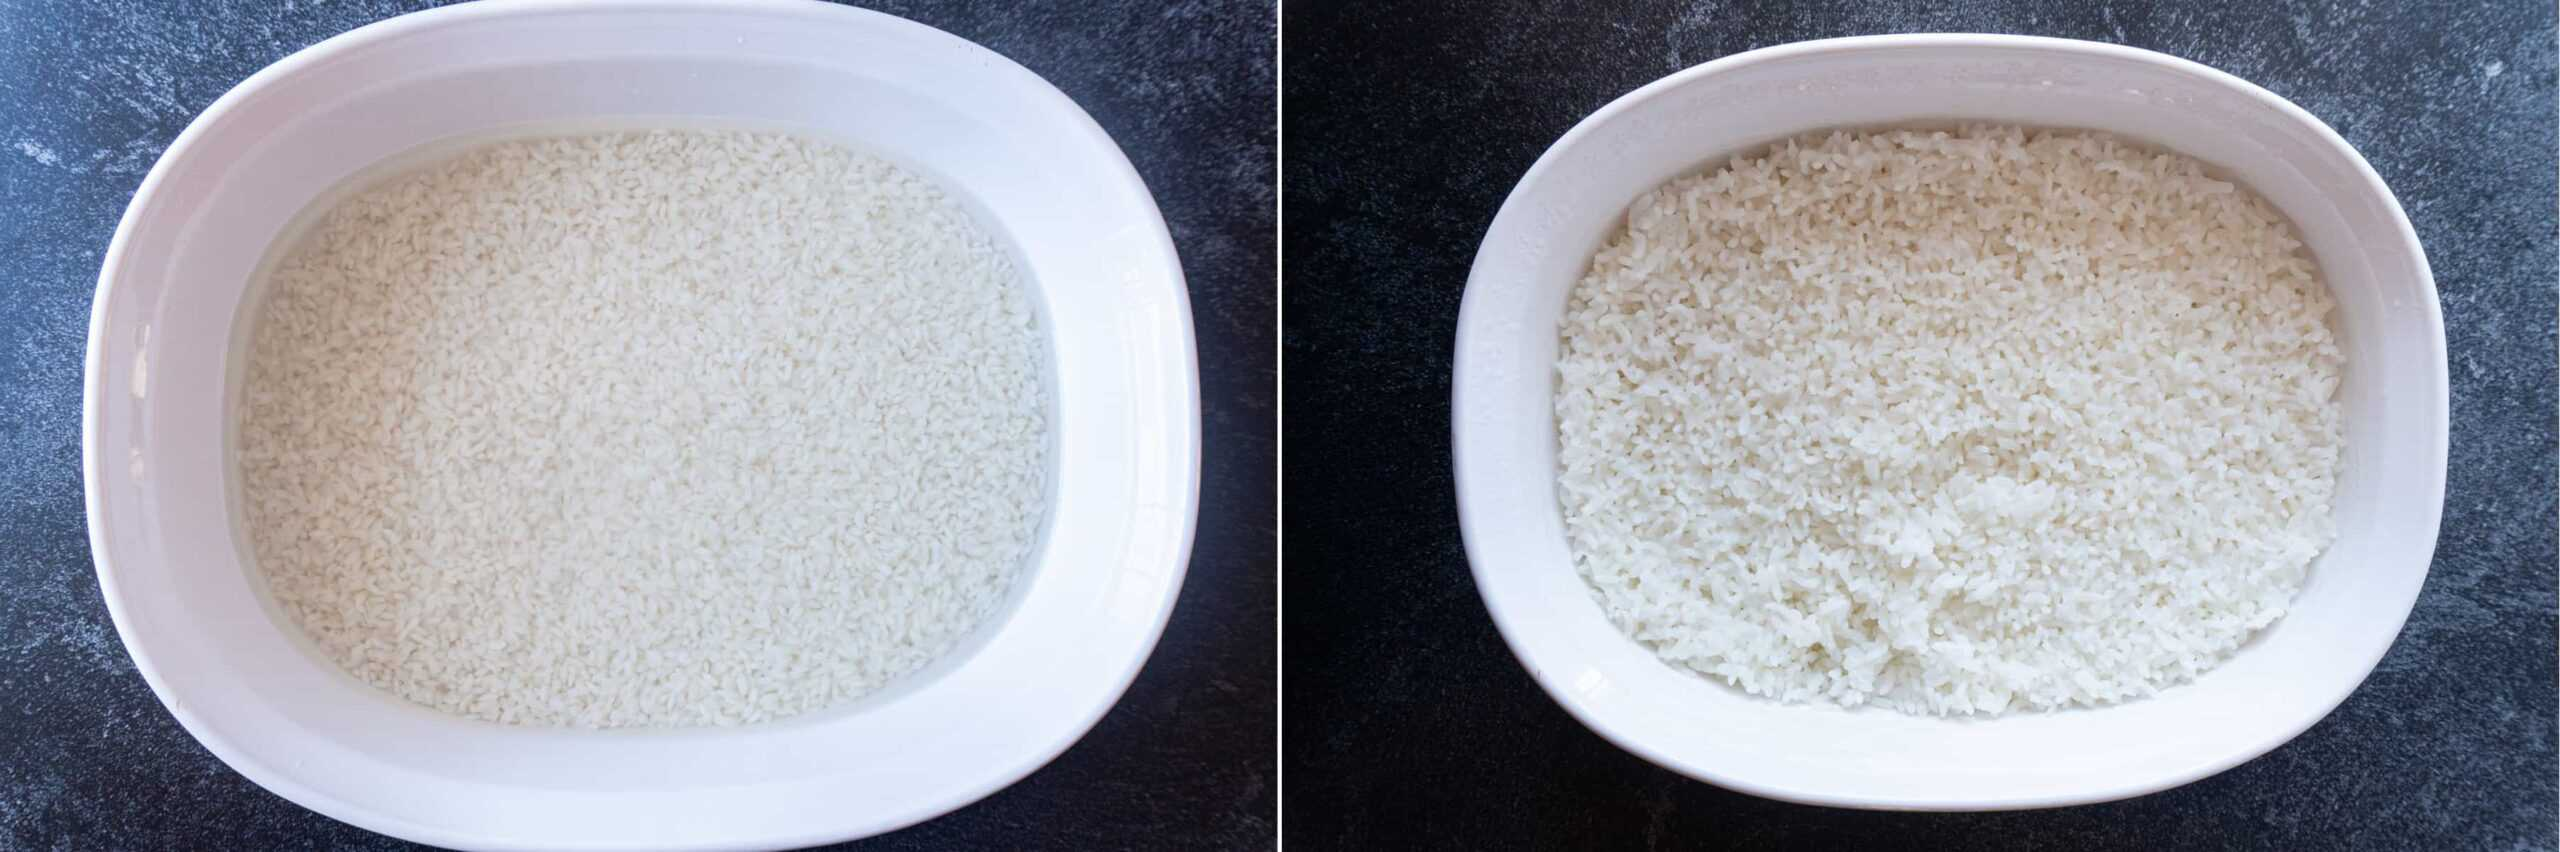 before and after baking rice